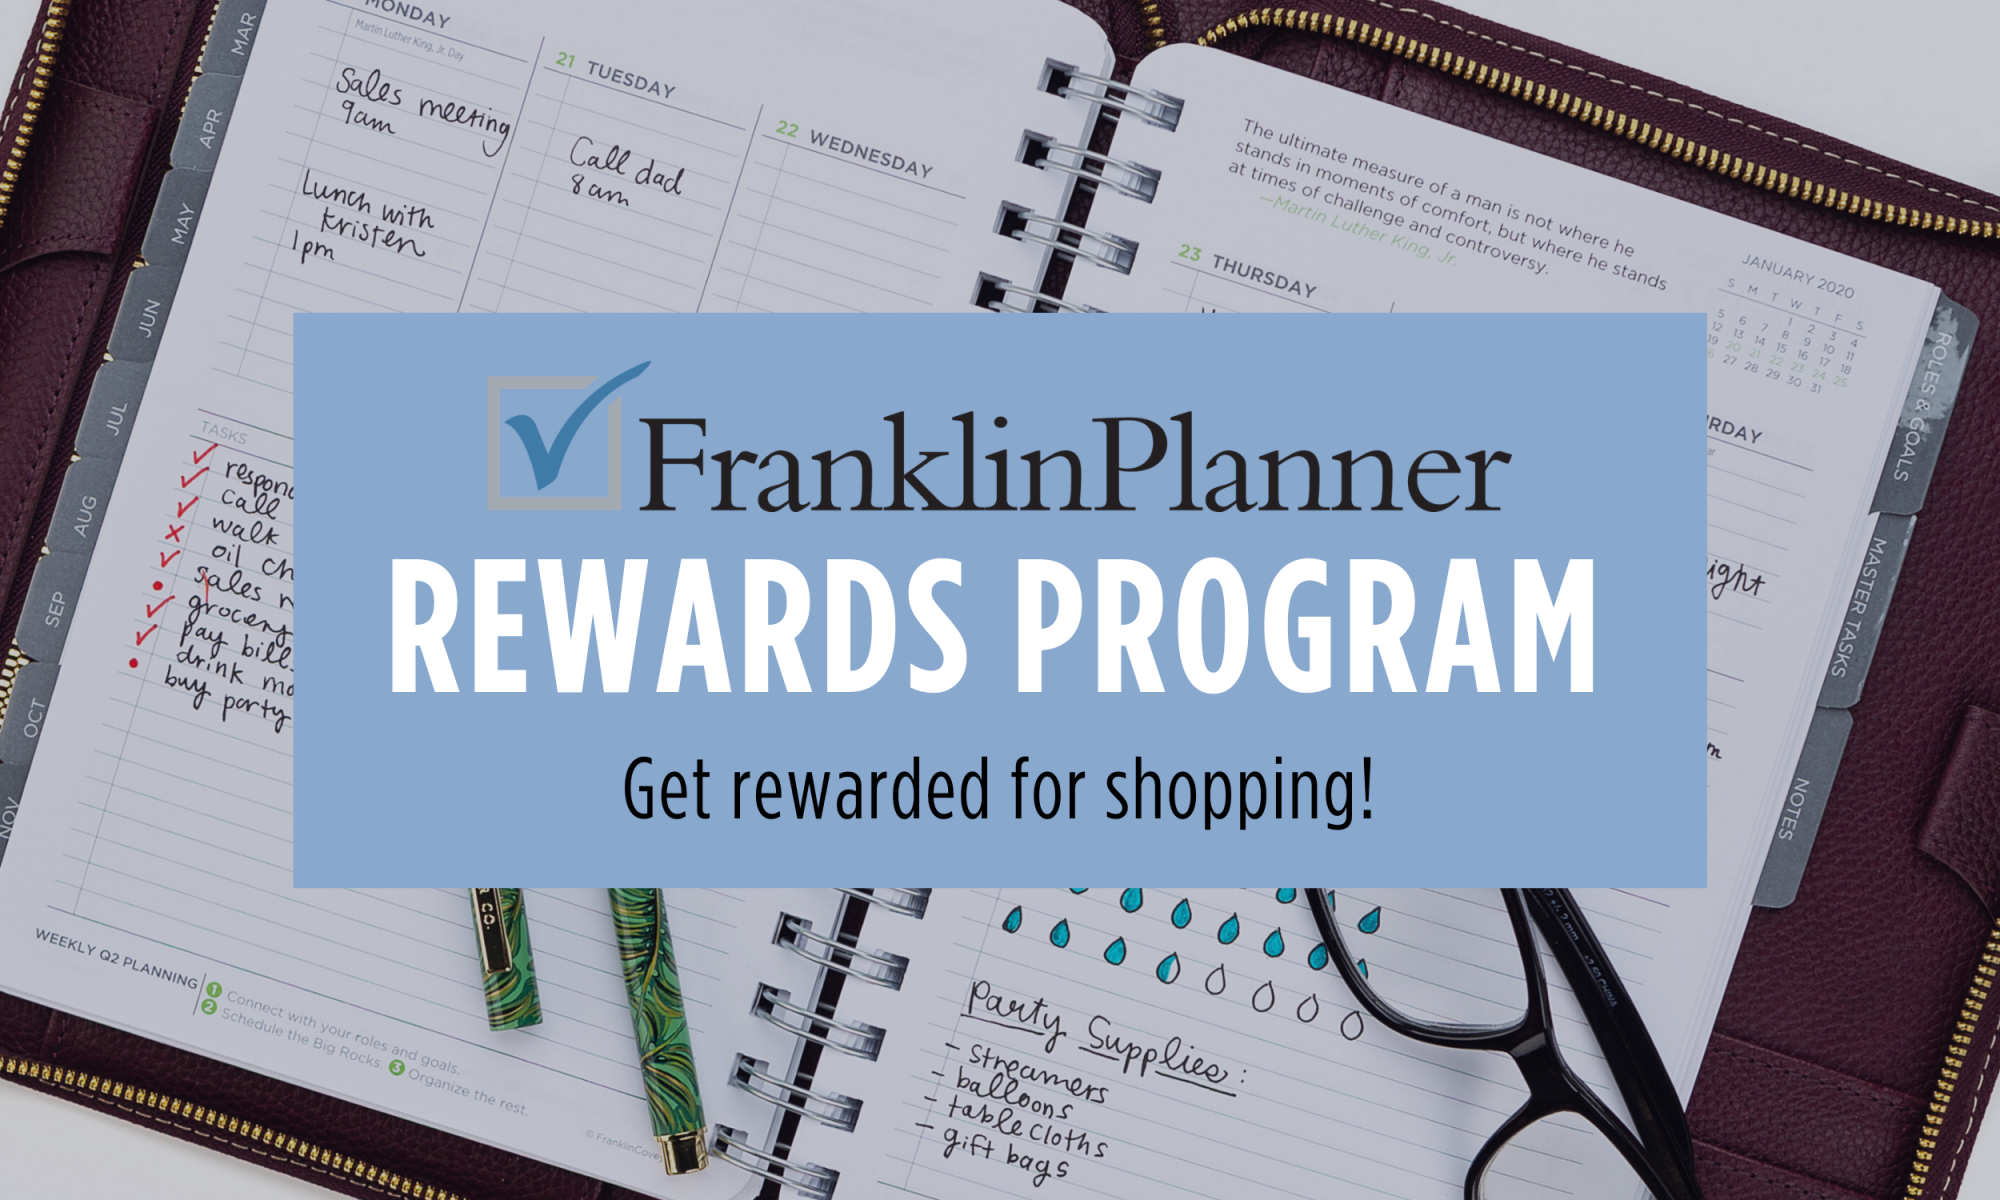 Franklin Planner Rewards program. Get rewarded for shopping.